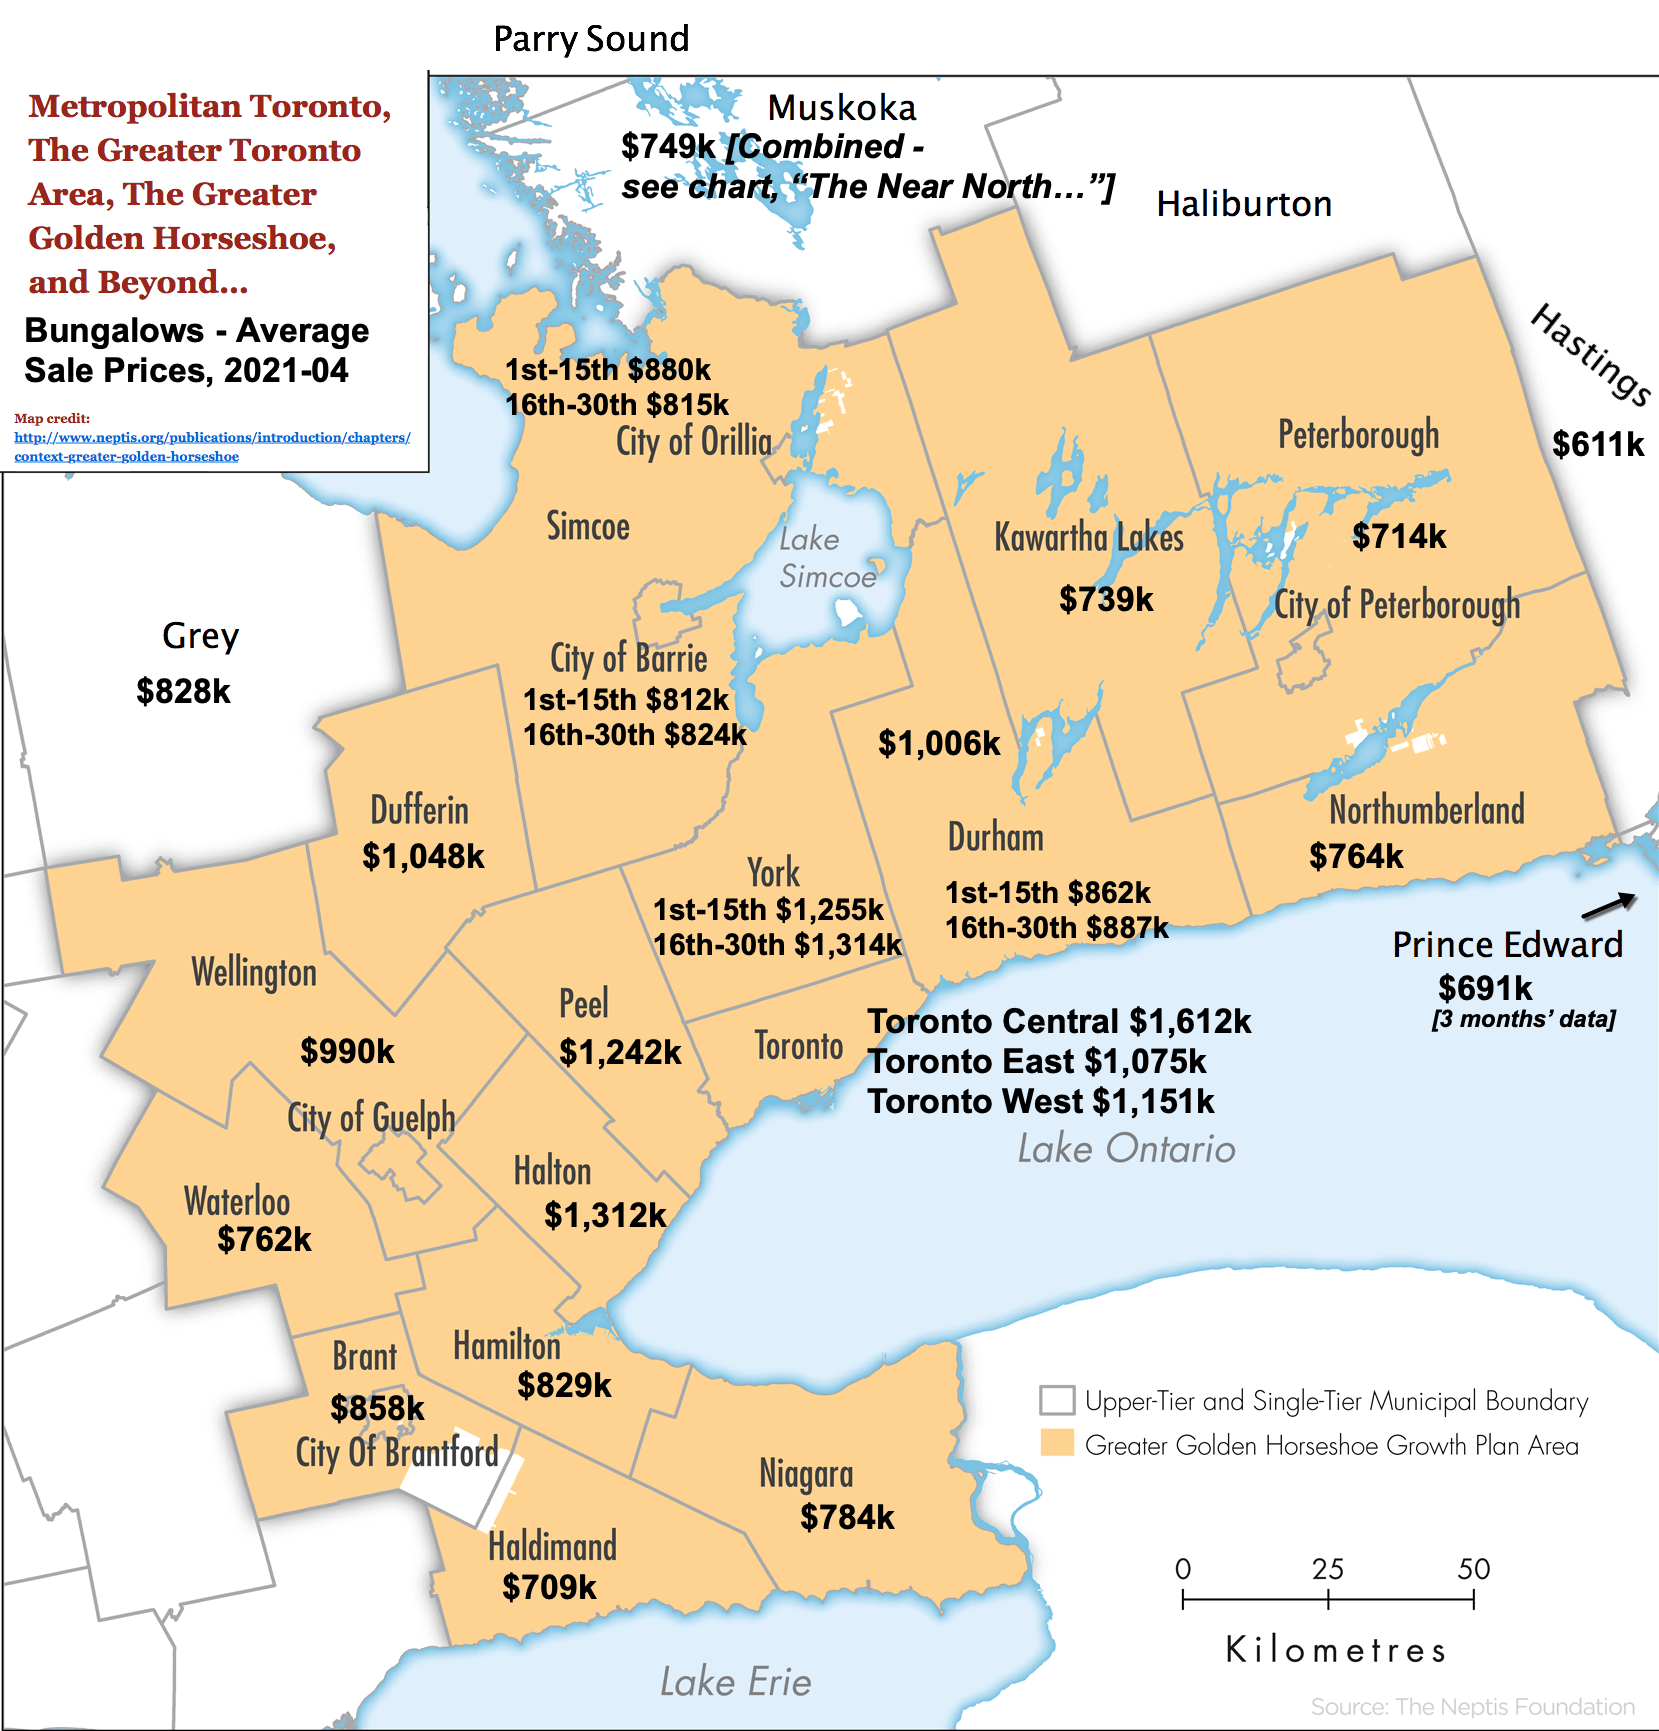 Map - Updated 2021-04 - Detailed Bungalow Sales Statistics - Toronto, The GTA, and The GGH [Greater Golden Horseshoe], Ontario.